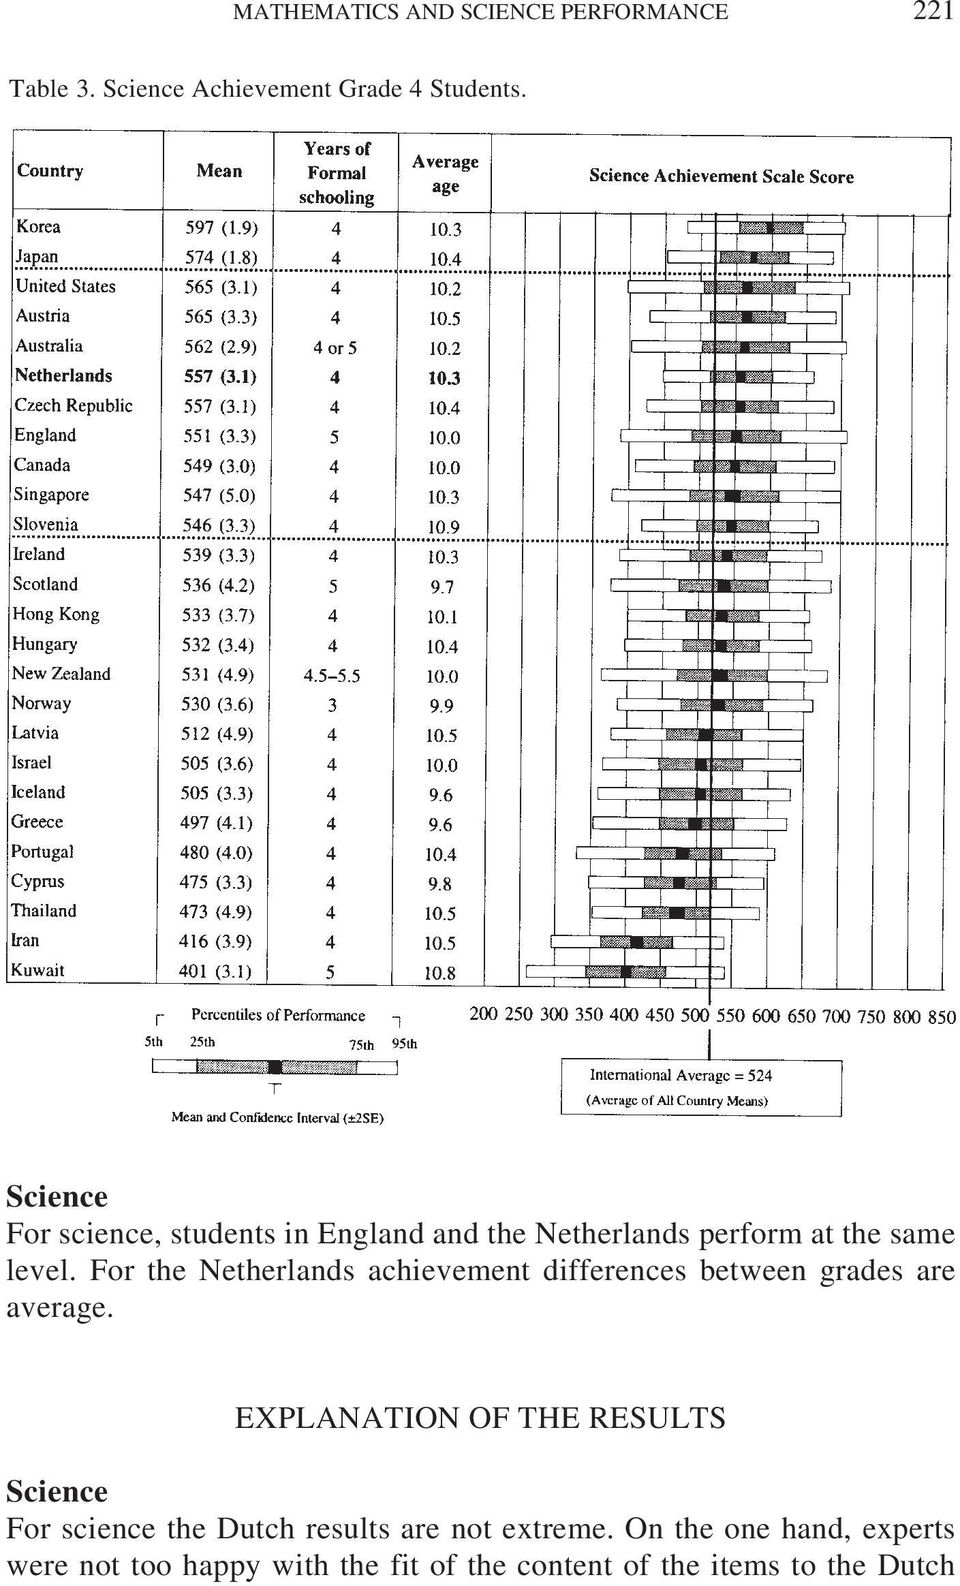 For the Netherlands achievement differences between grades are average.